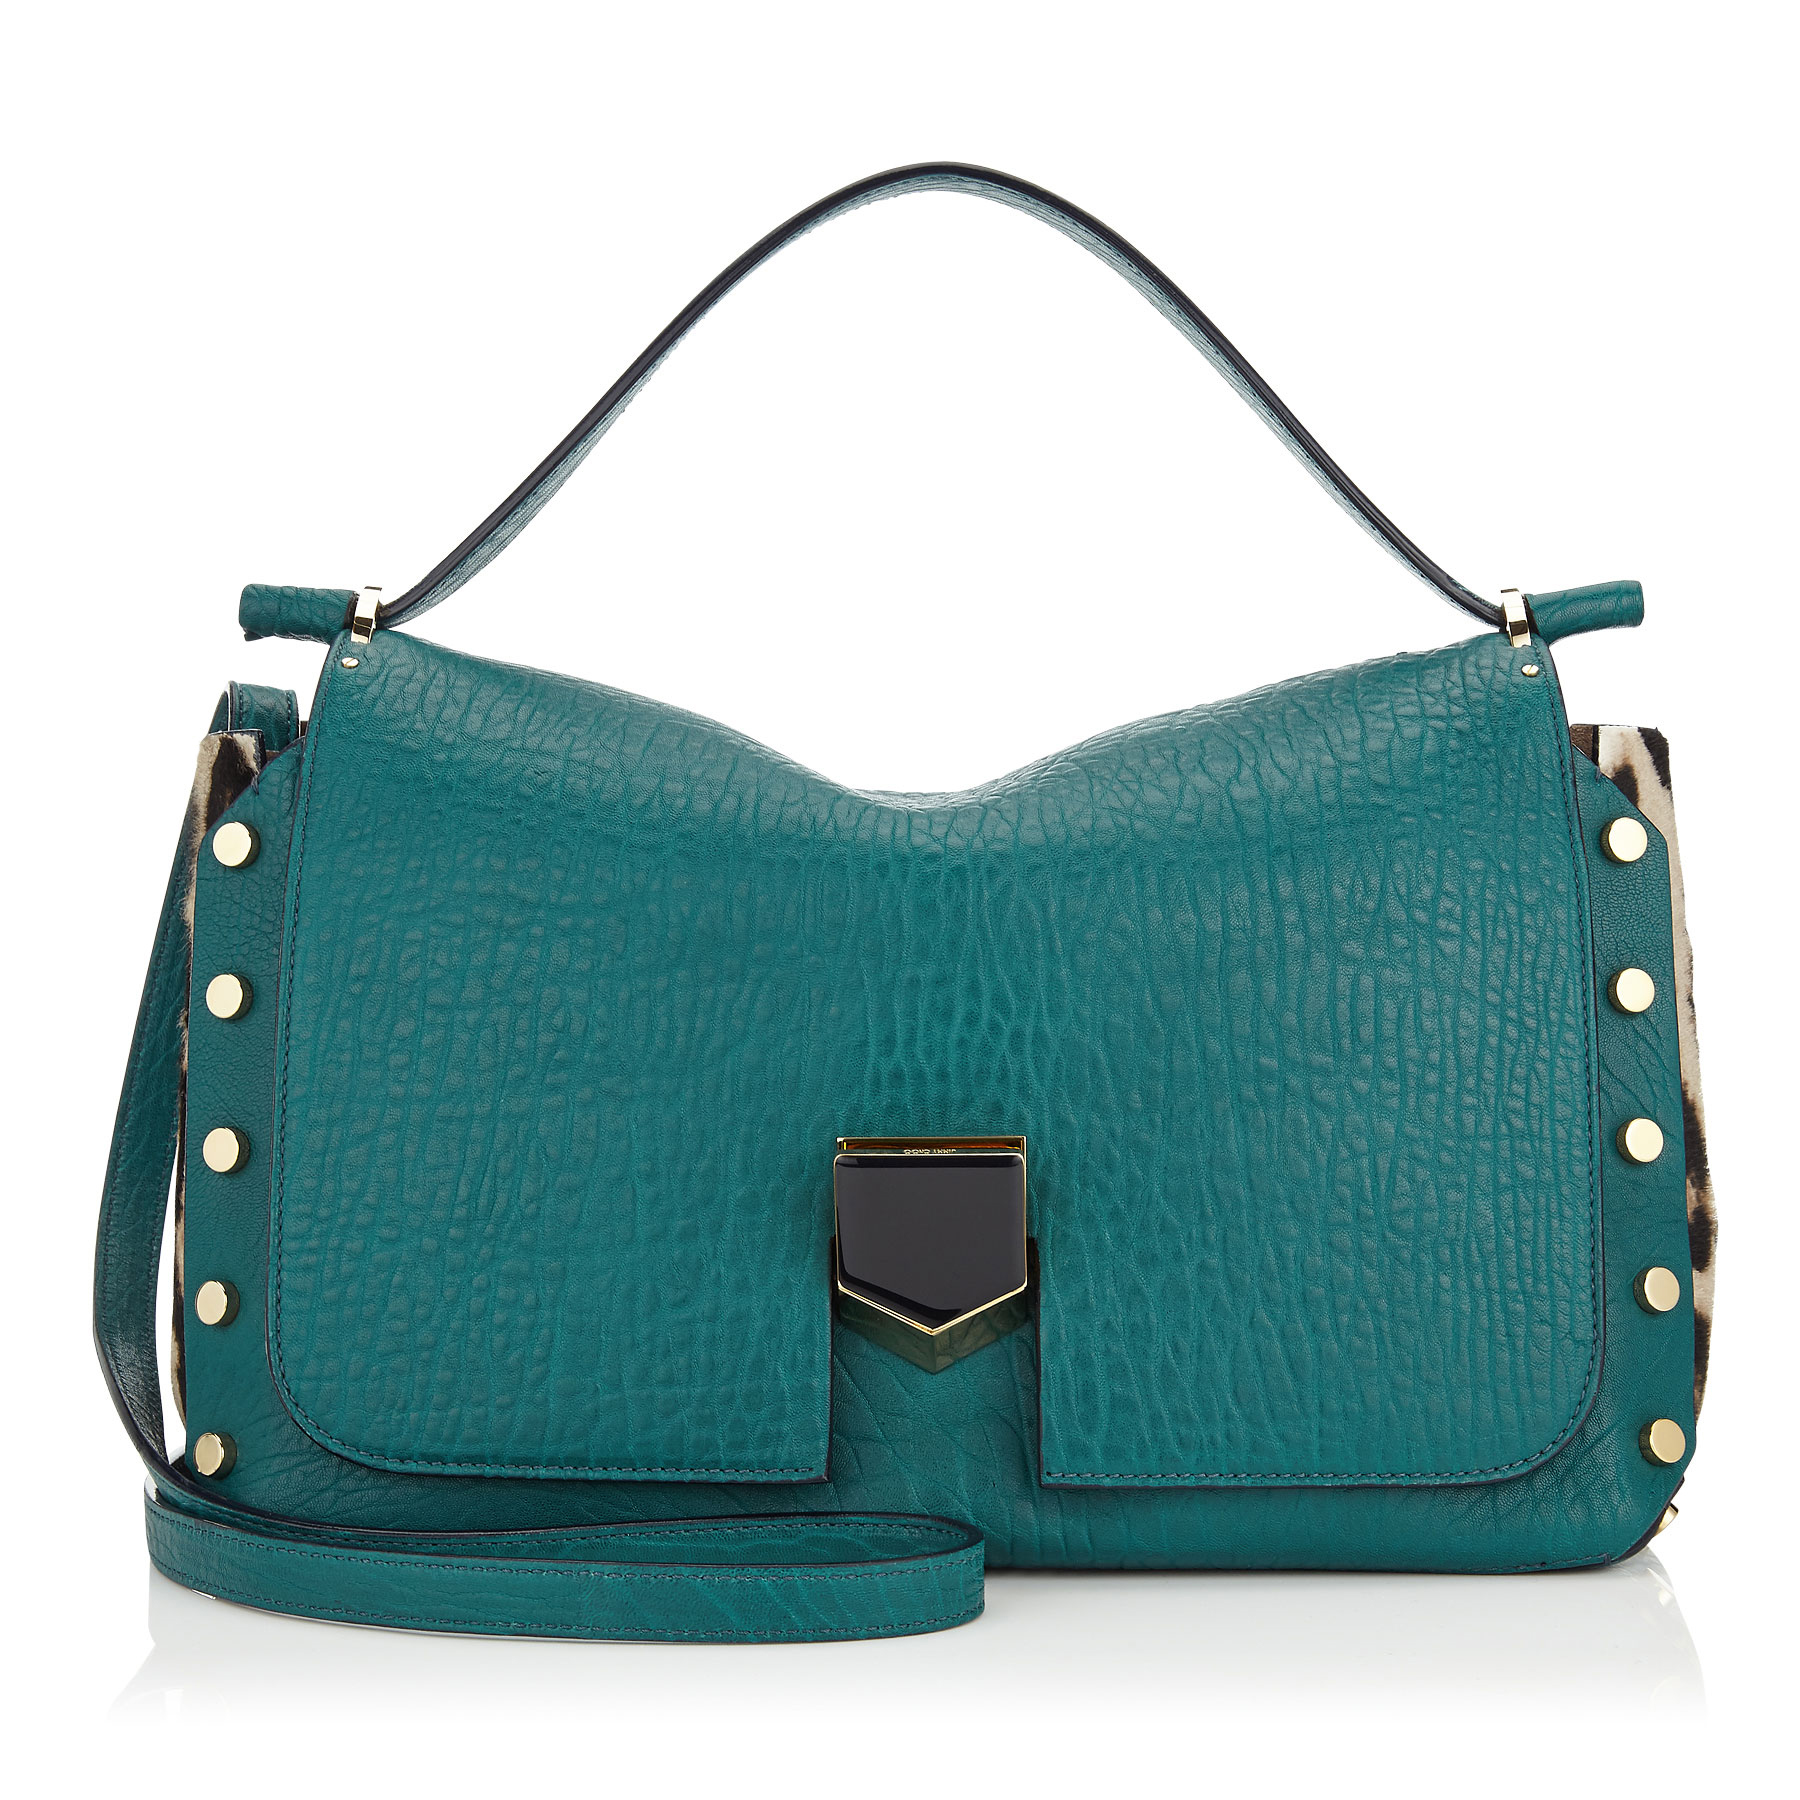 LOCKETT/M Teal Grainy Leather and Snow Leopard Print Pony Handbag